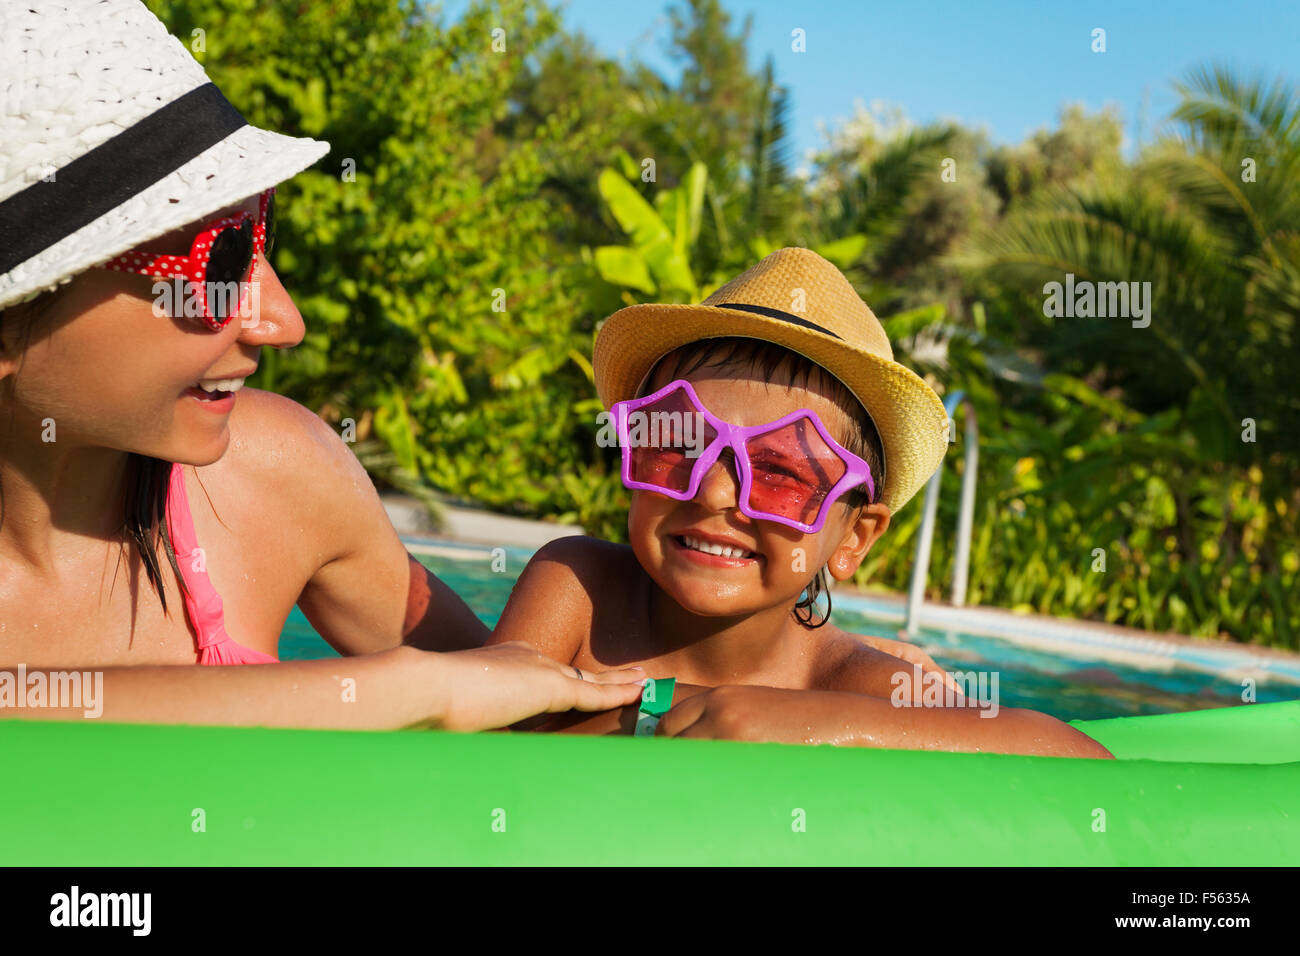 Happy mother and boy wearing sunglasses in pool Photo Stock